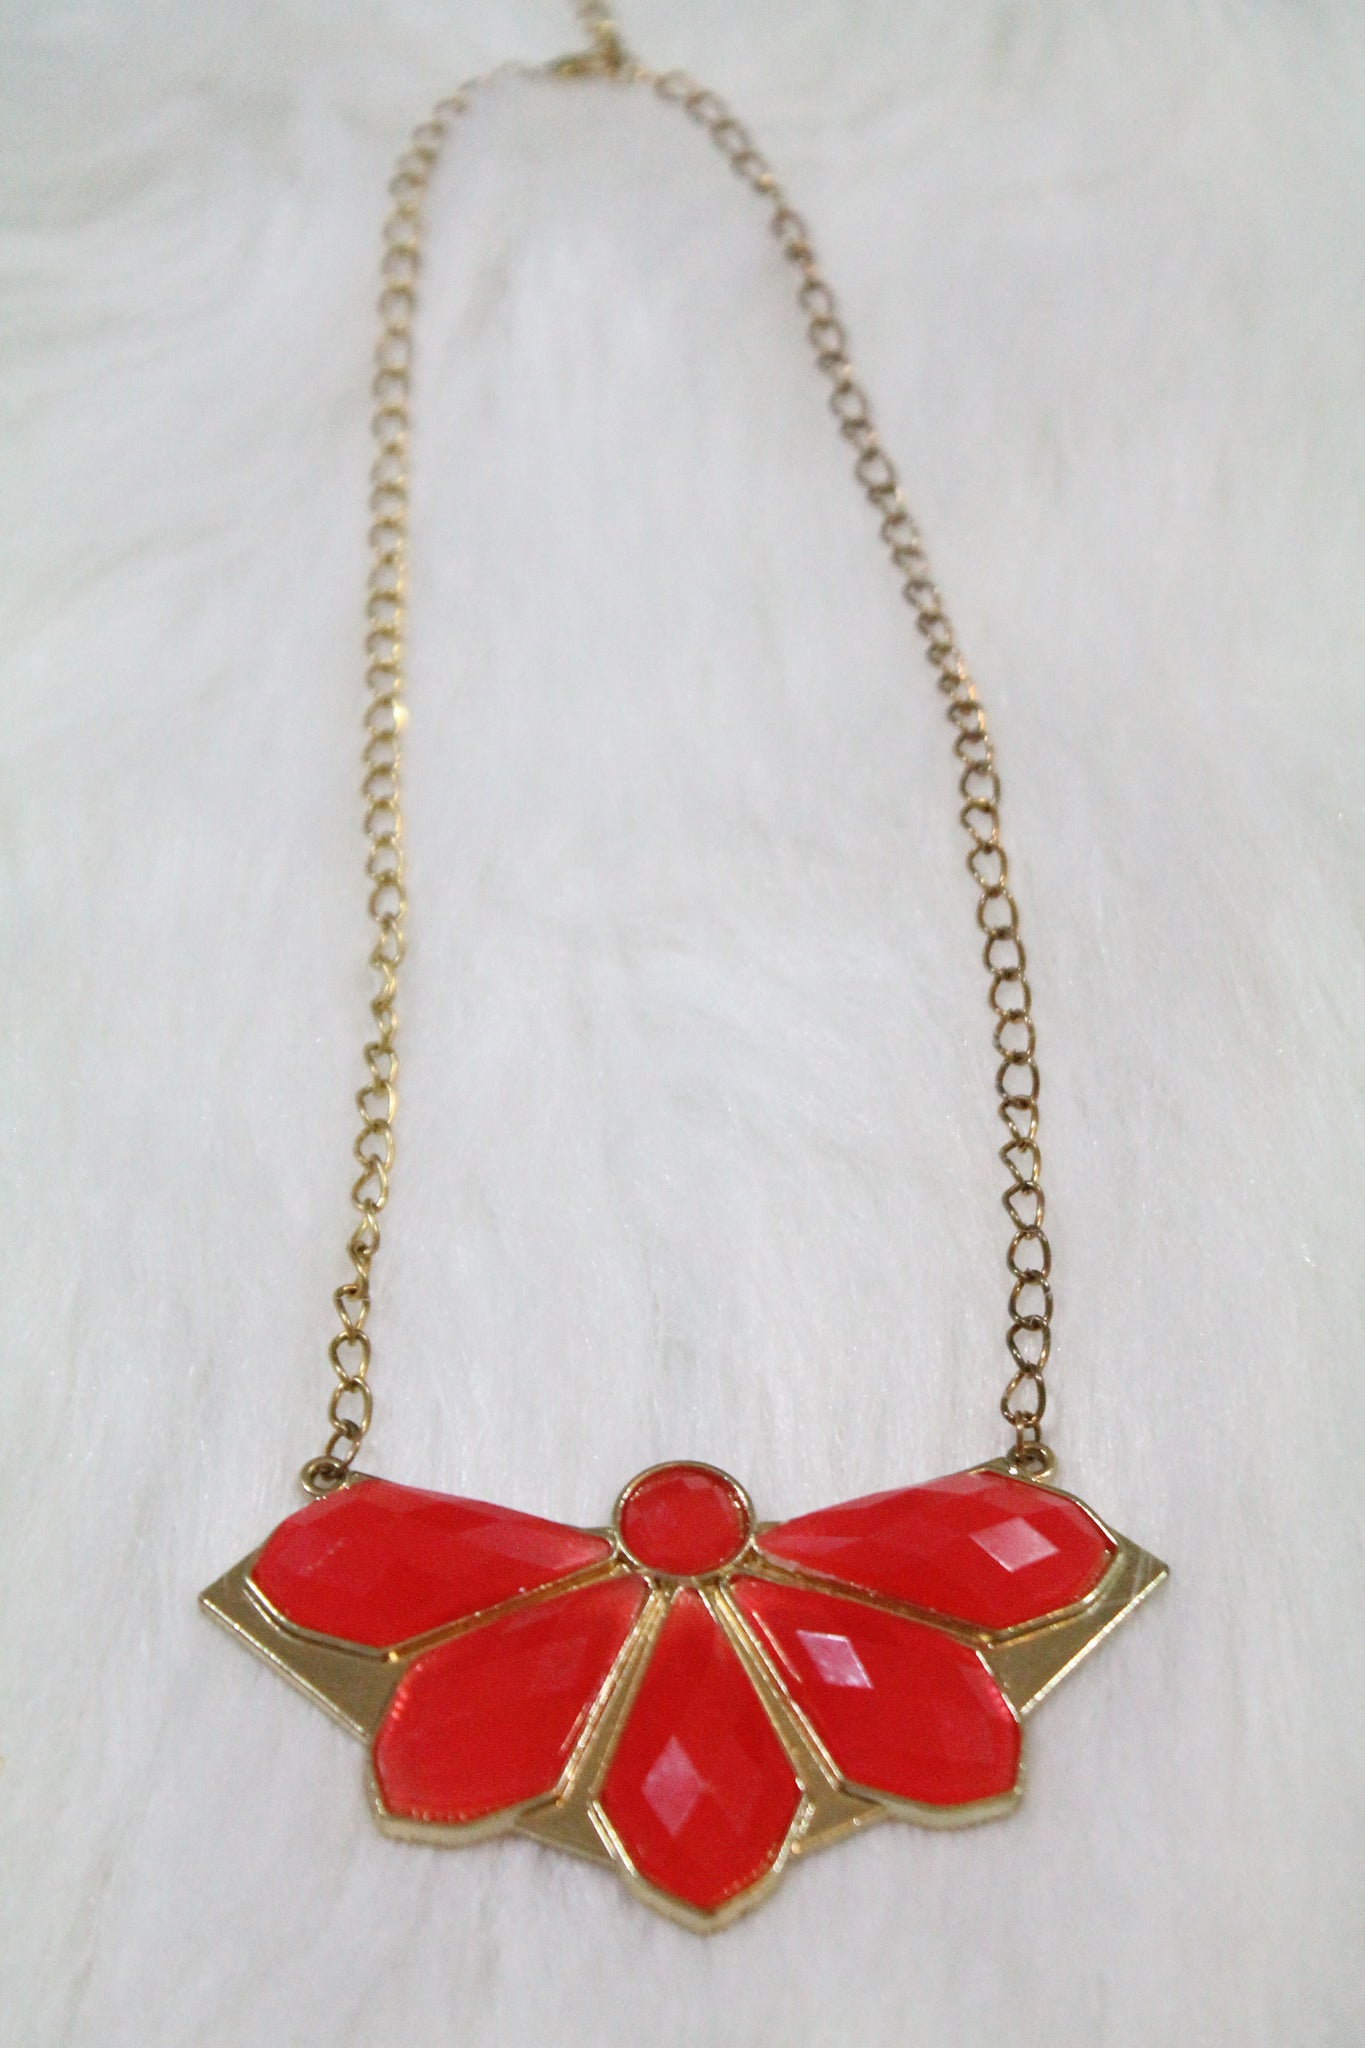 Design Gem Chain Necklace - Red